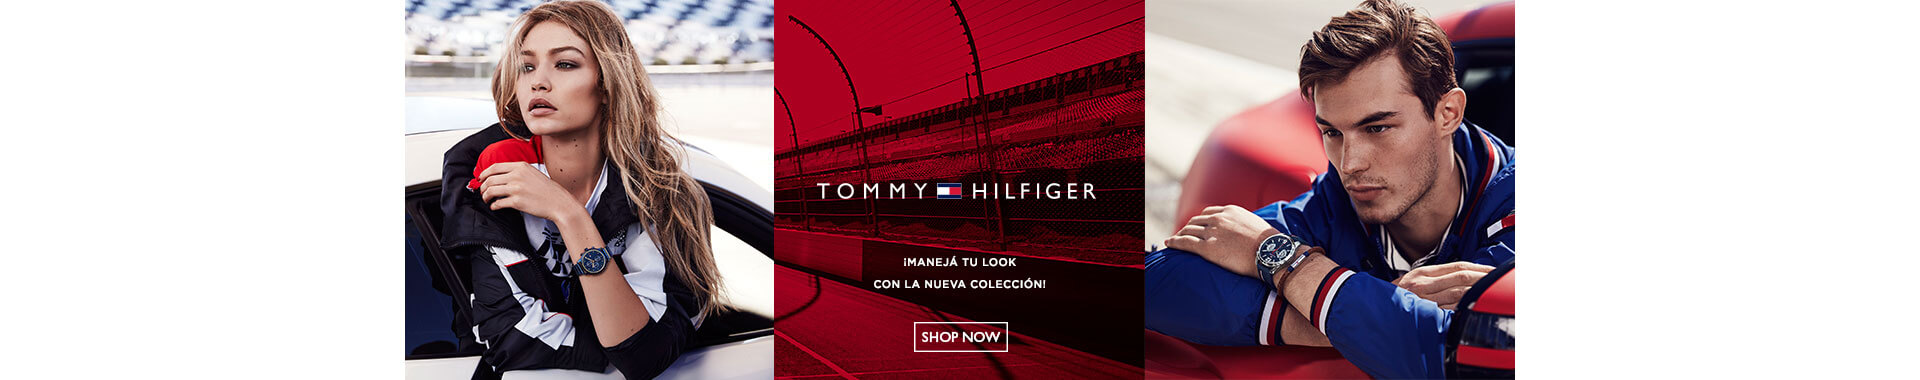 banner Tommy SS18